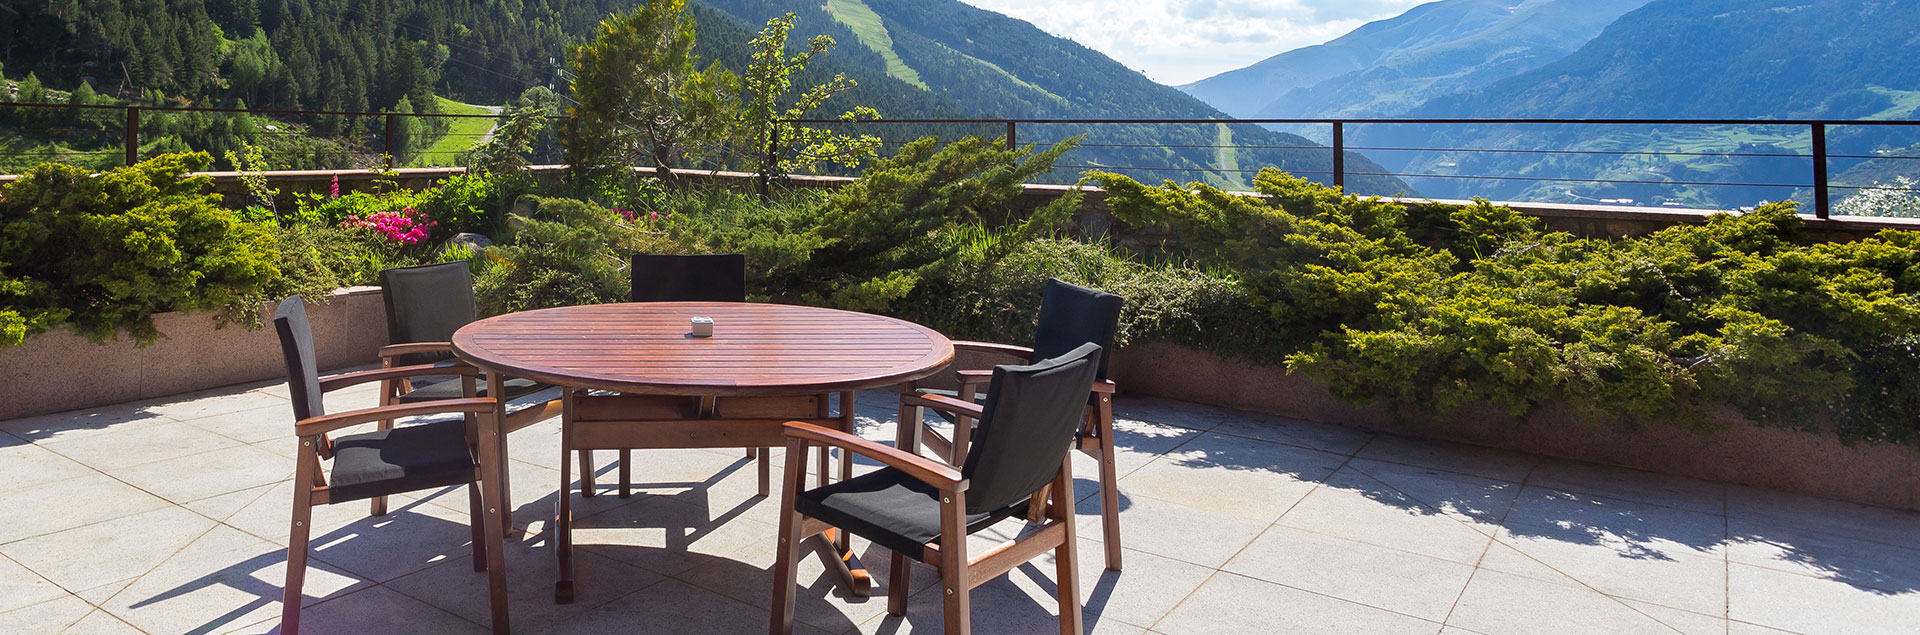 hotel in andorra with a terrace with views soldeu